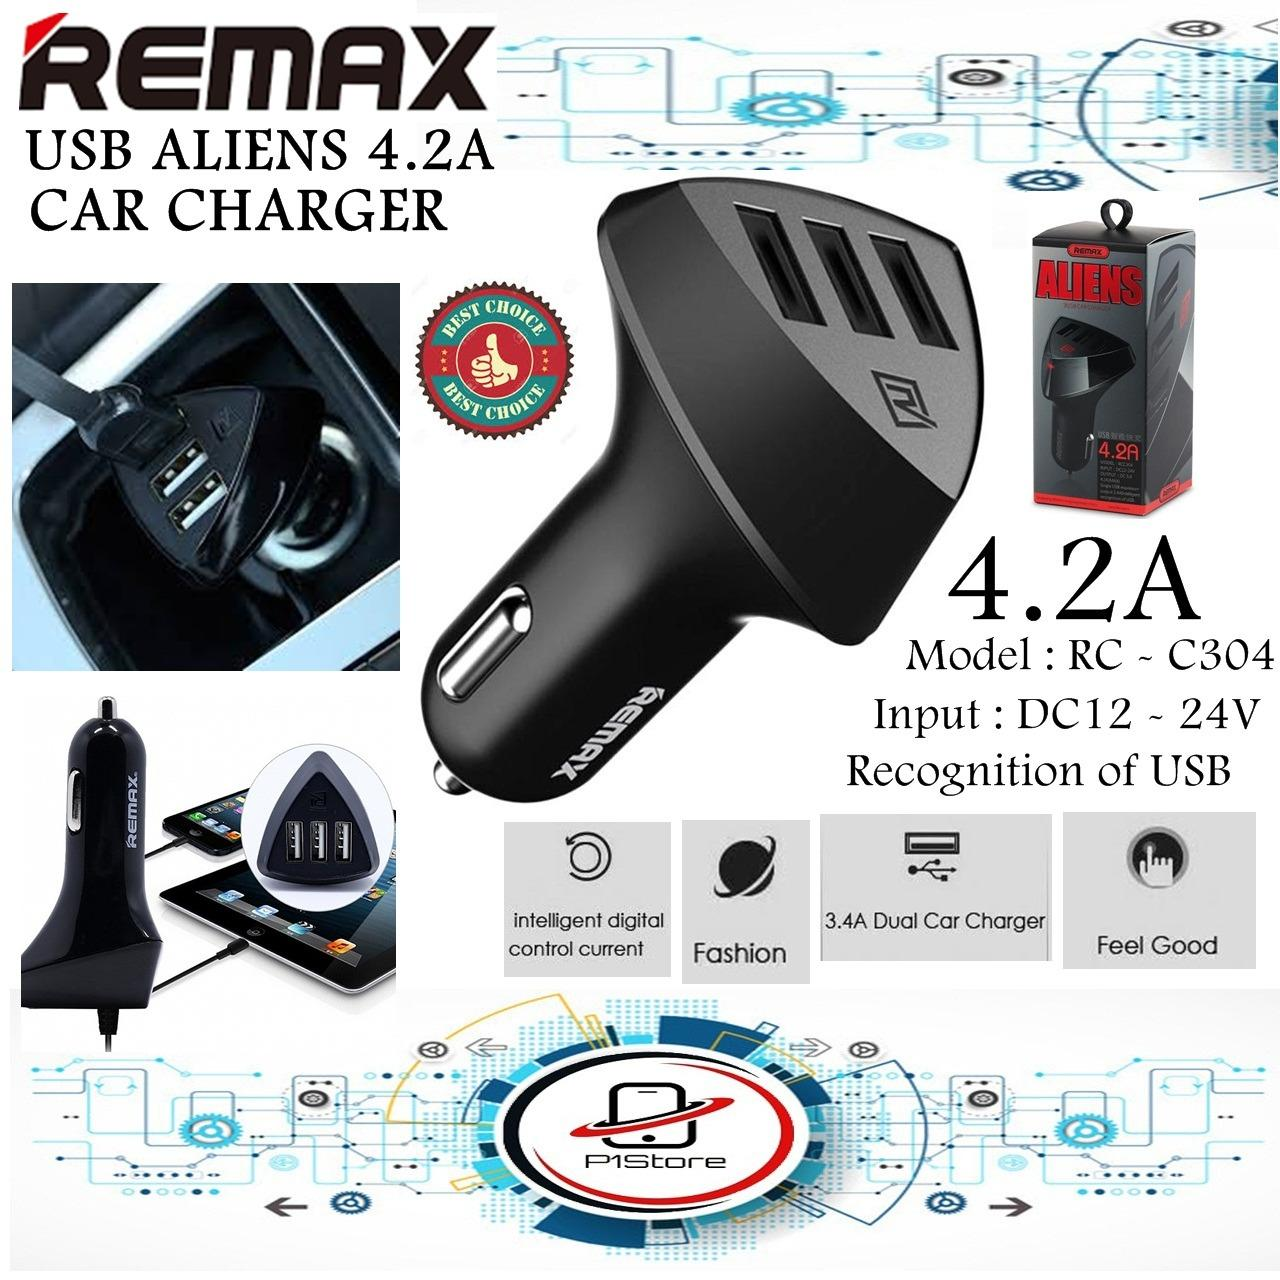 Cek Harga Baru Car Charger Remax Aliens 3usb Output Saver Mobil Usb For Tablet Smartphone Series 3 42a